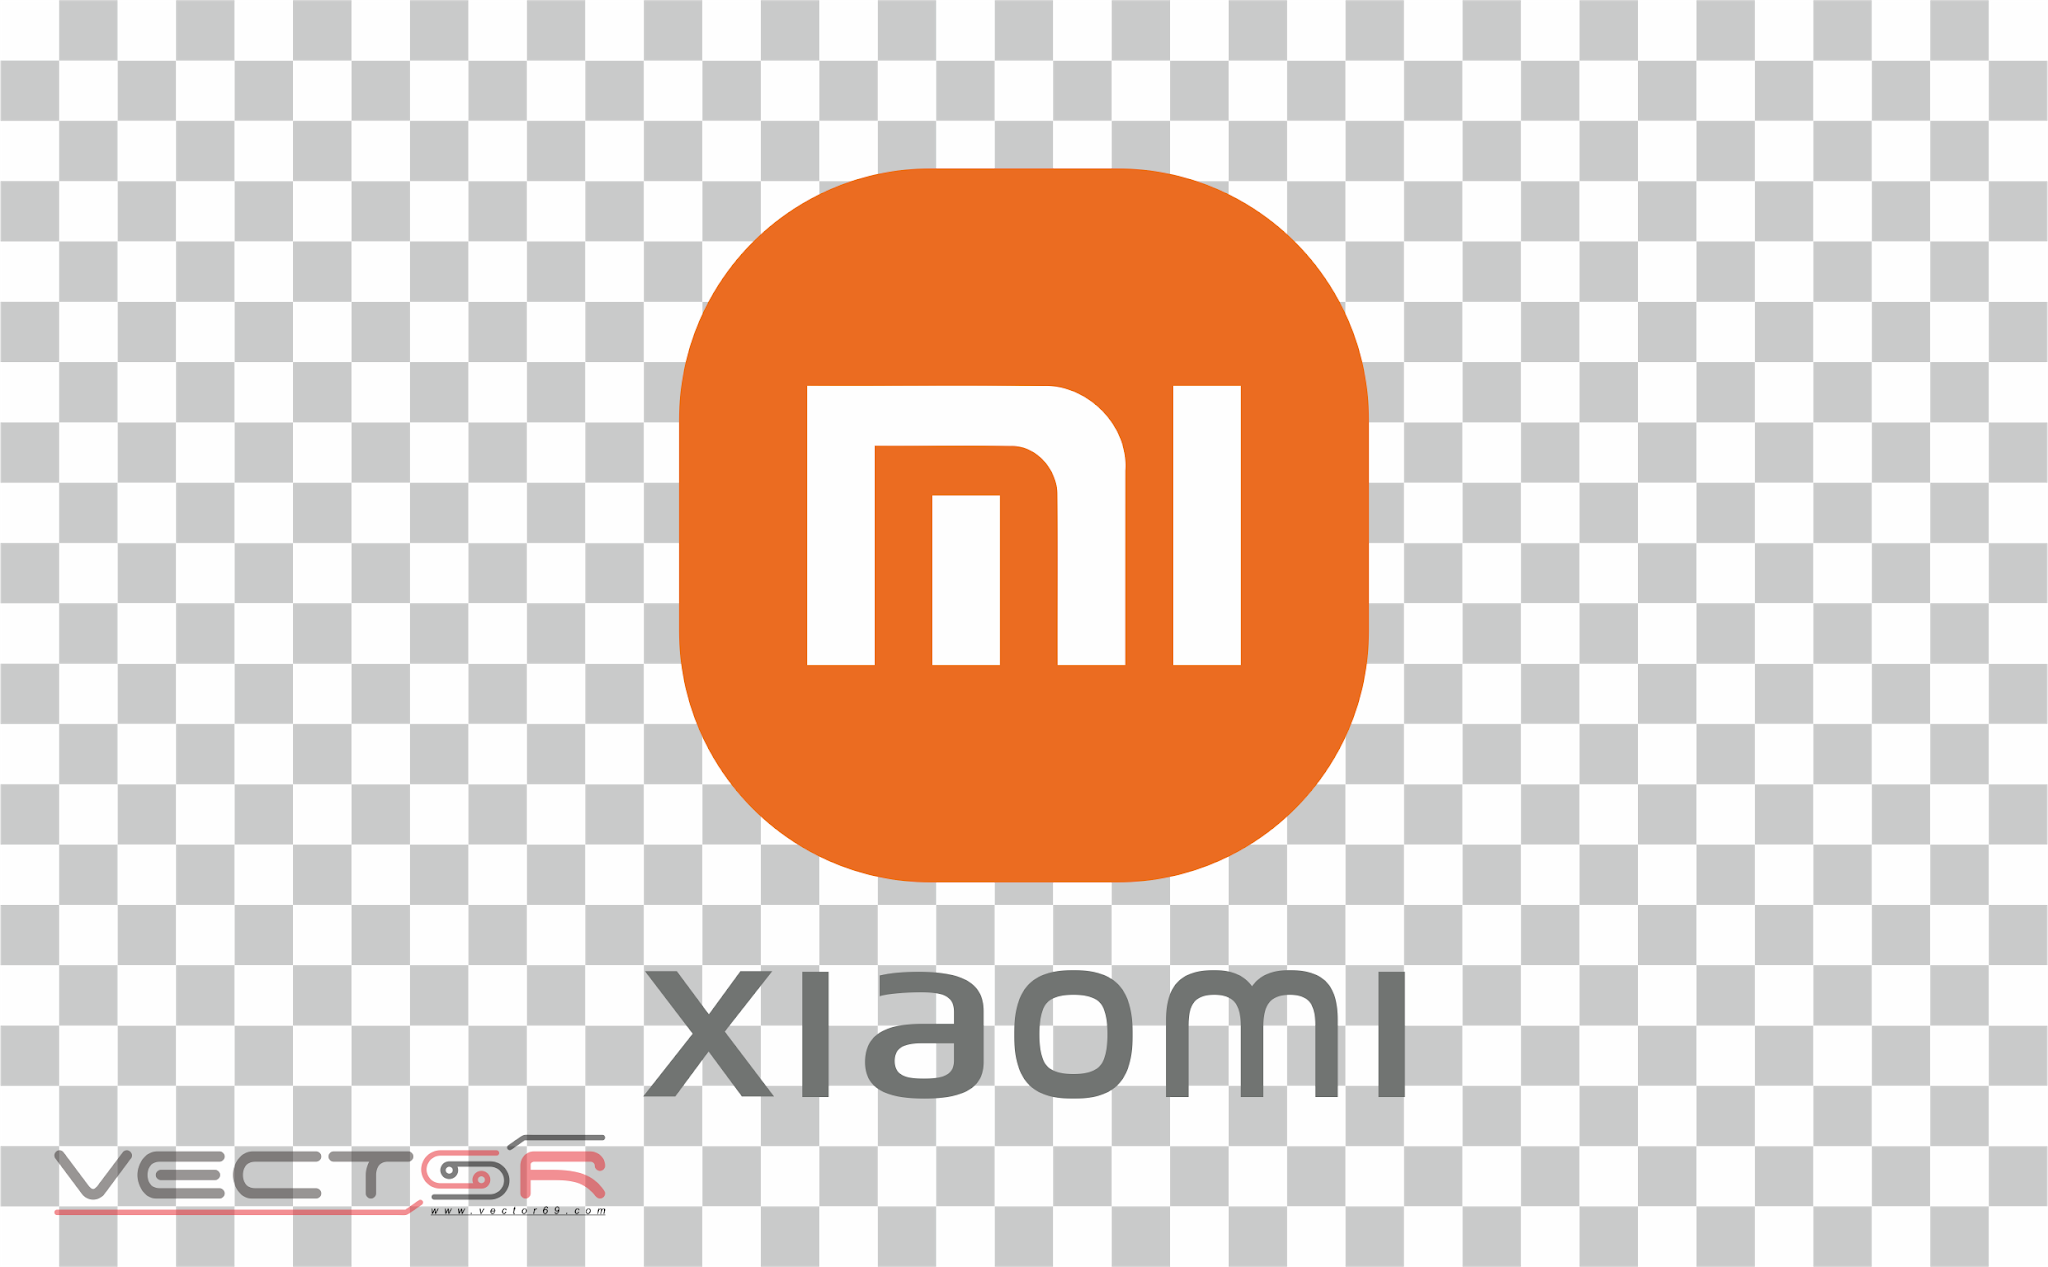 Xiaomi New 2021 Logo - Download Vector File PNG (Portable Network Graphics)